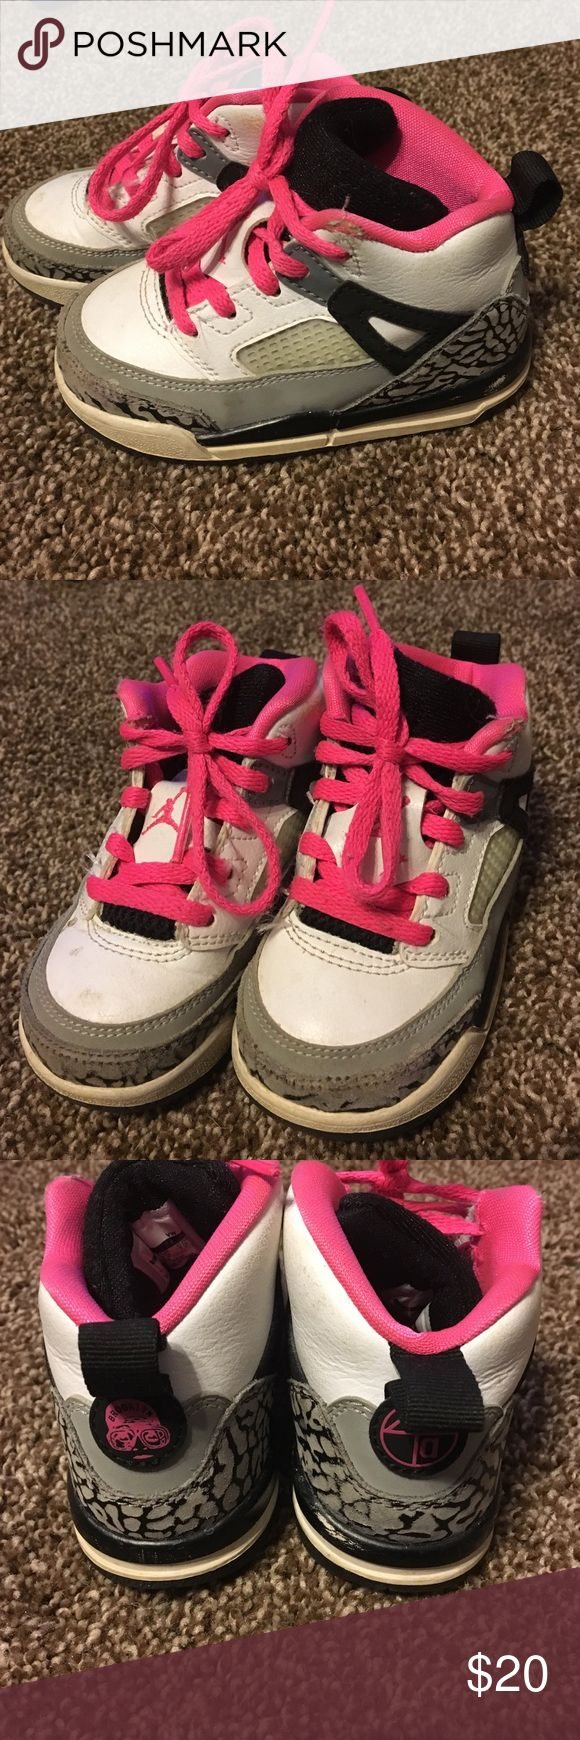 Girl's size 6 c toddler's Jordan sneakers Gray, pink, black, and white Jordan sneakers - very nice and comfortable. Jordan Shoes Sneakers